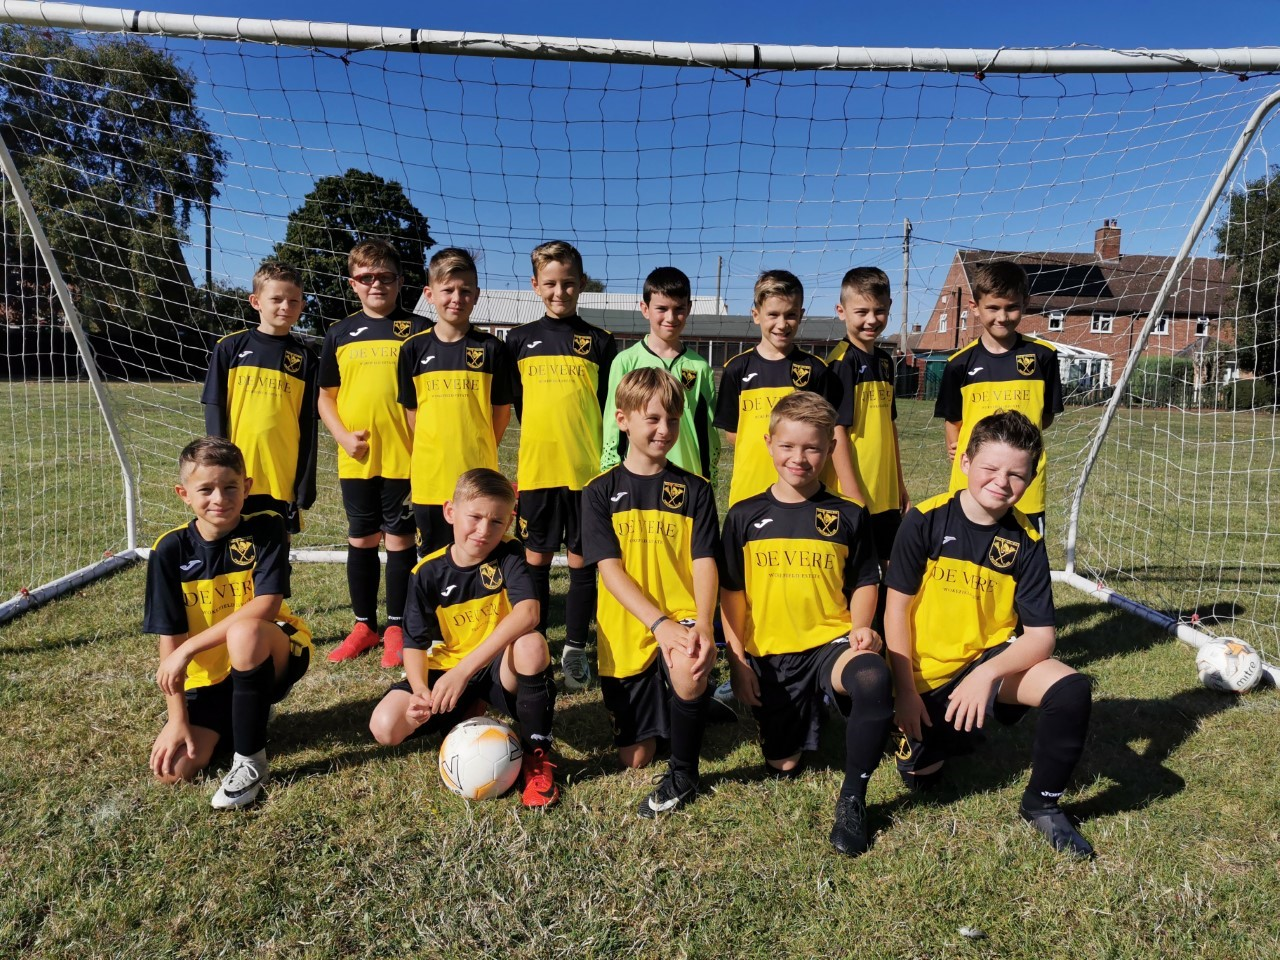 The Tadley Calleva Centurions under 11s raise £1,000 thanks to local hotel